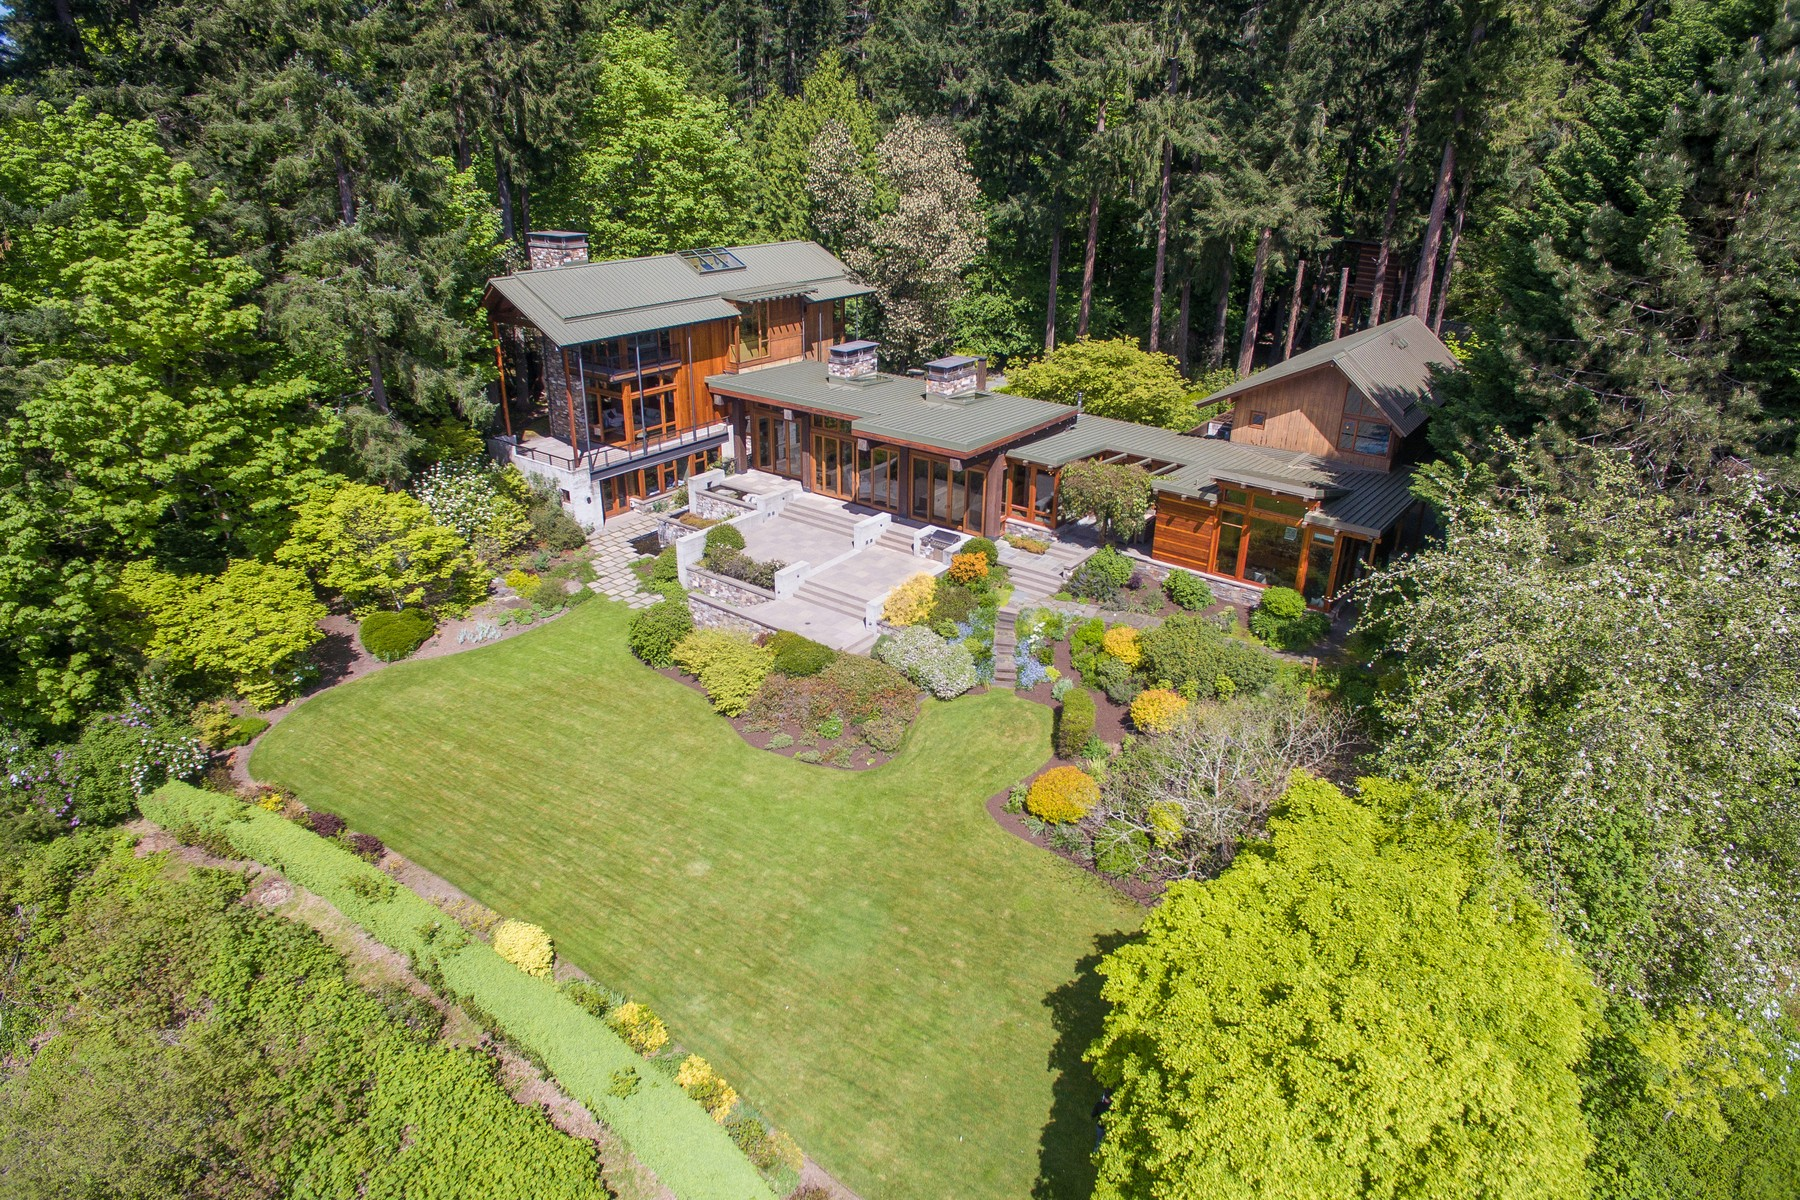 Casa Unifamiliar por un Venta en Picturesque waterfront estate RES5/3 Undisclosed Bainbridge Island, Washington 98110 Estados Unidos